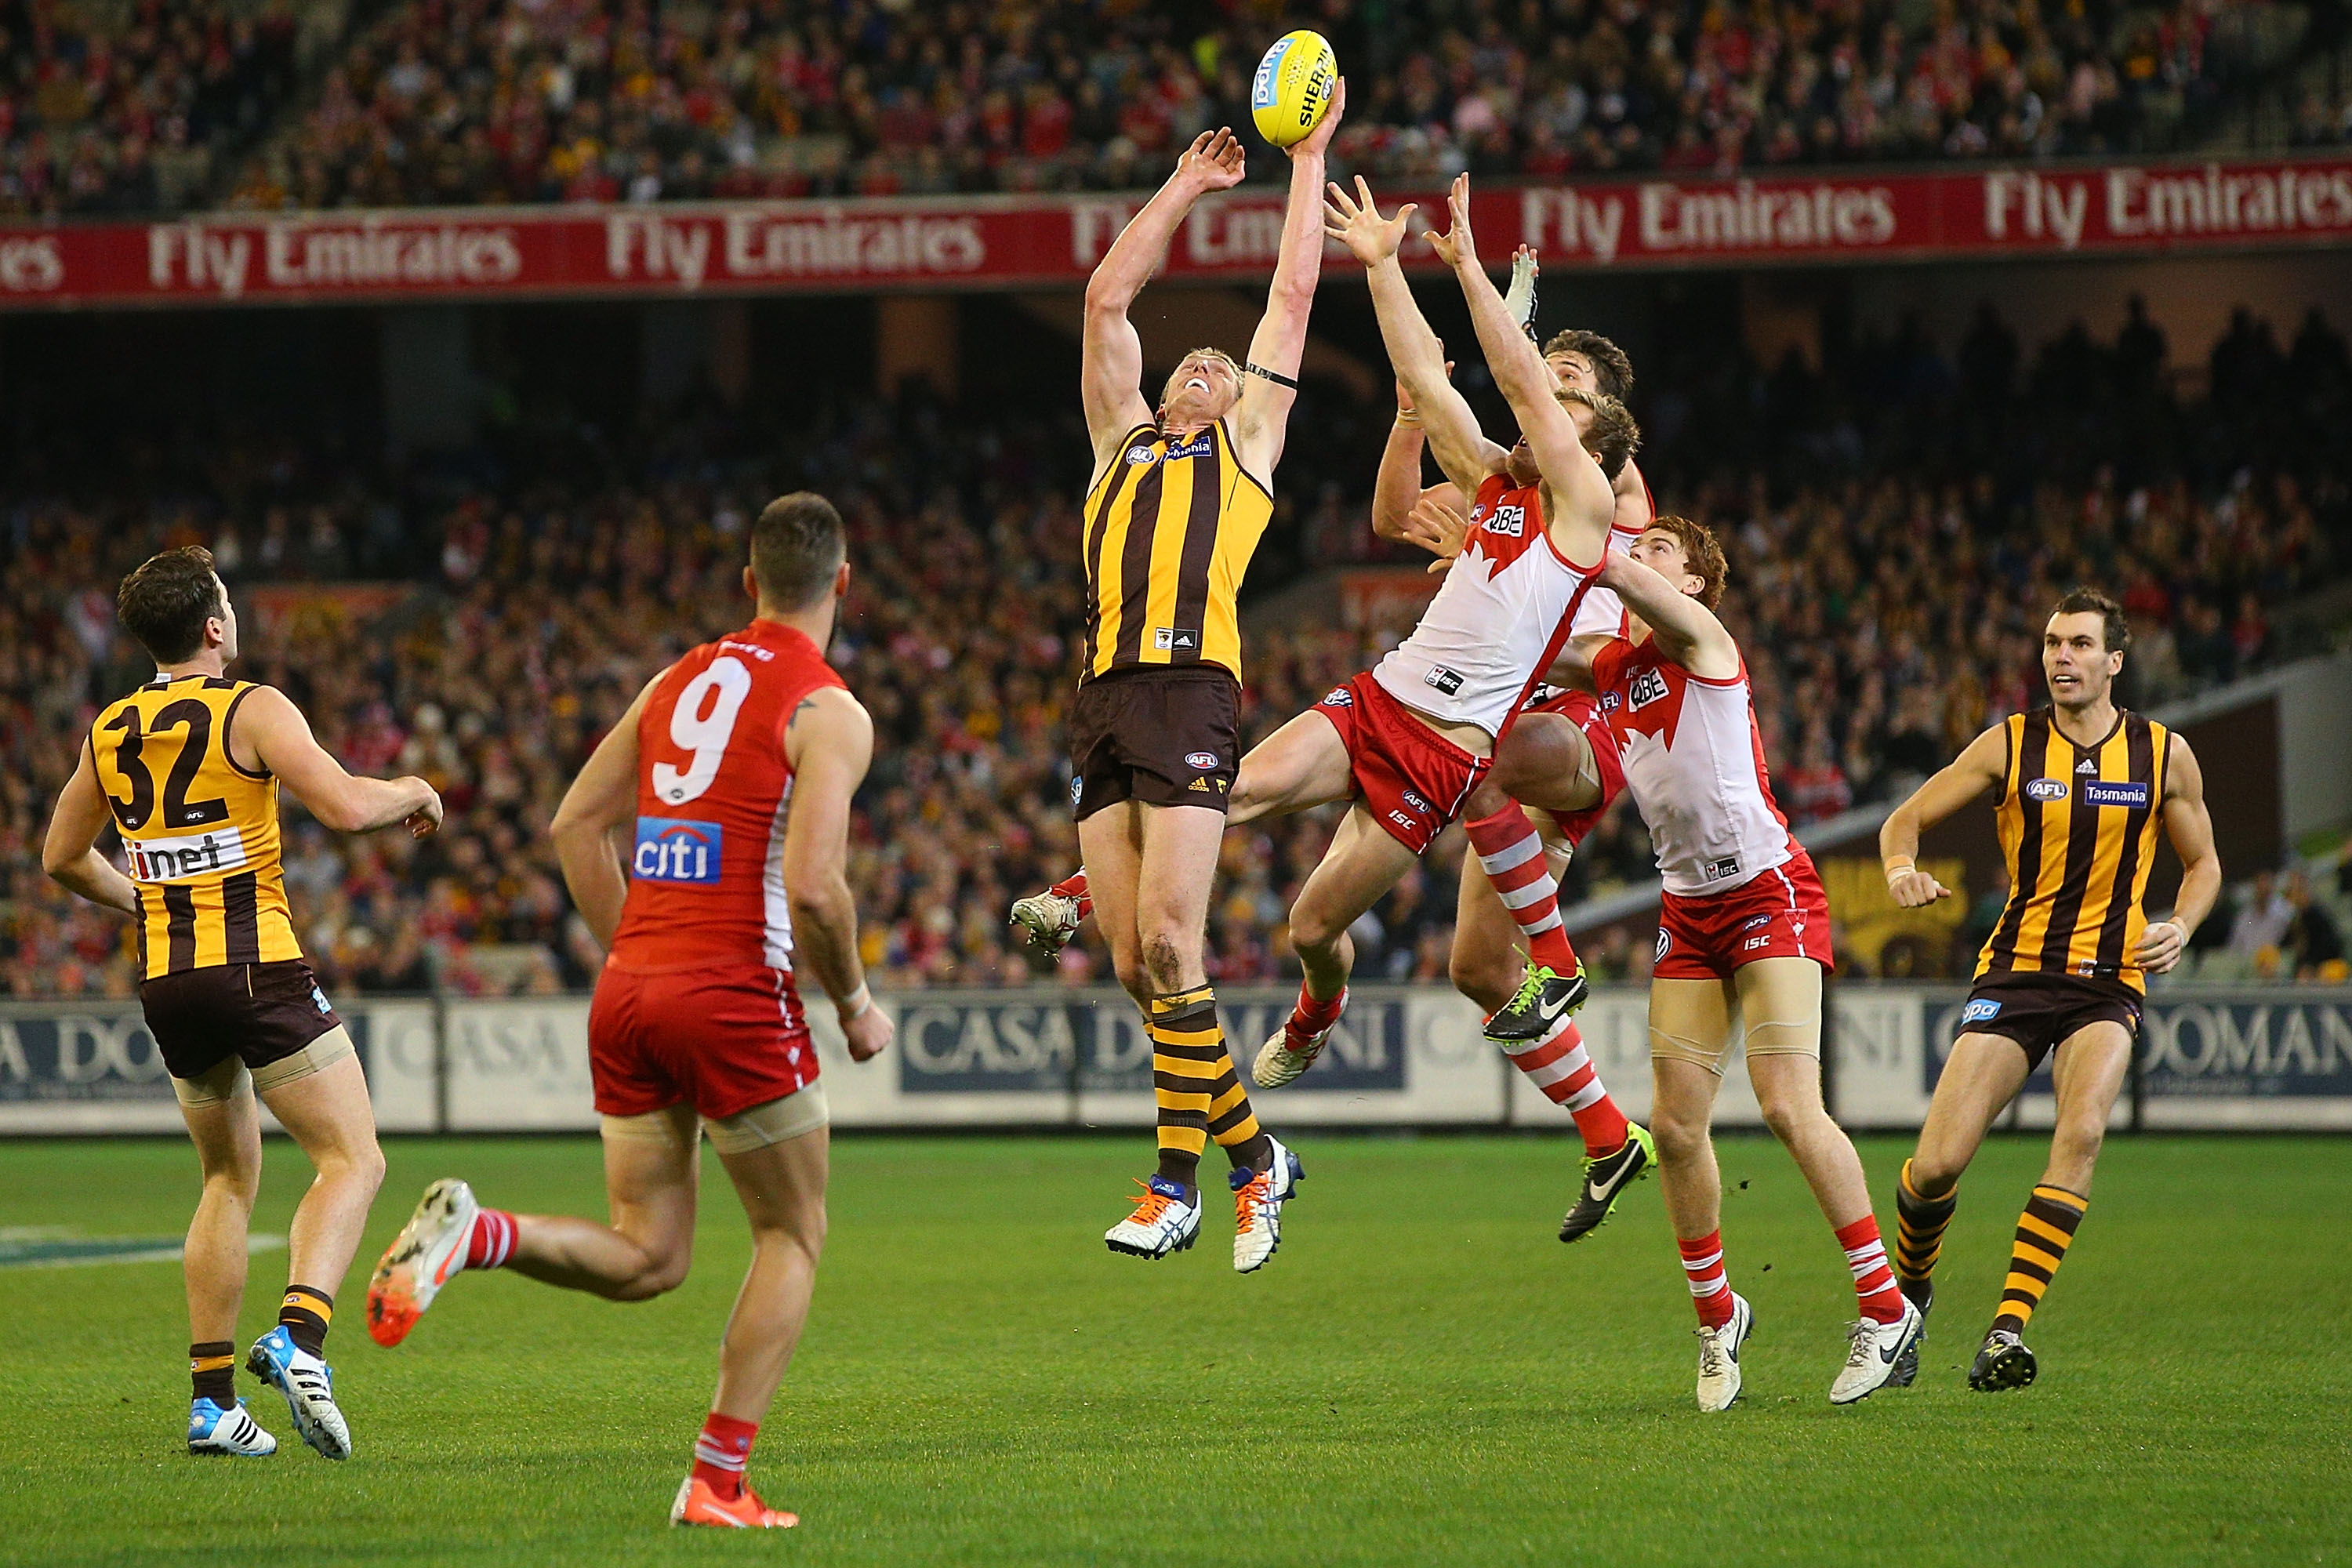 AFL Injuries and Physiotherapy